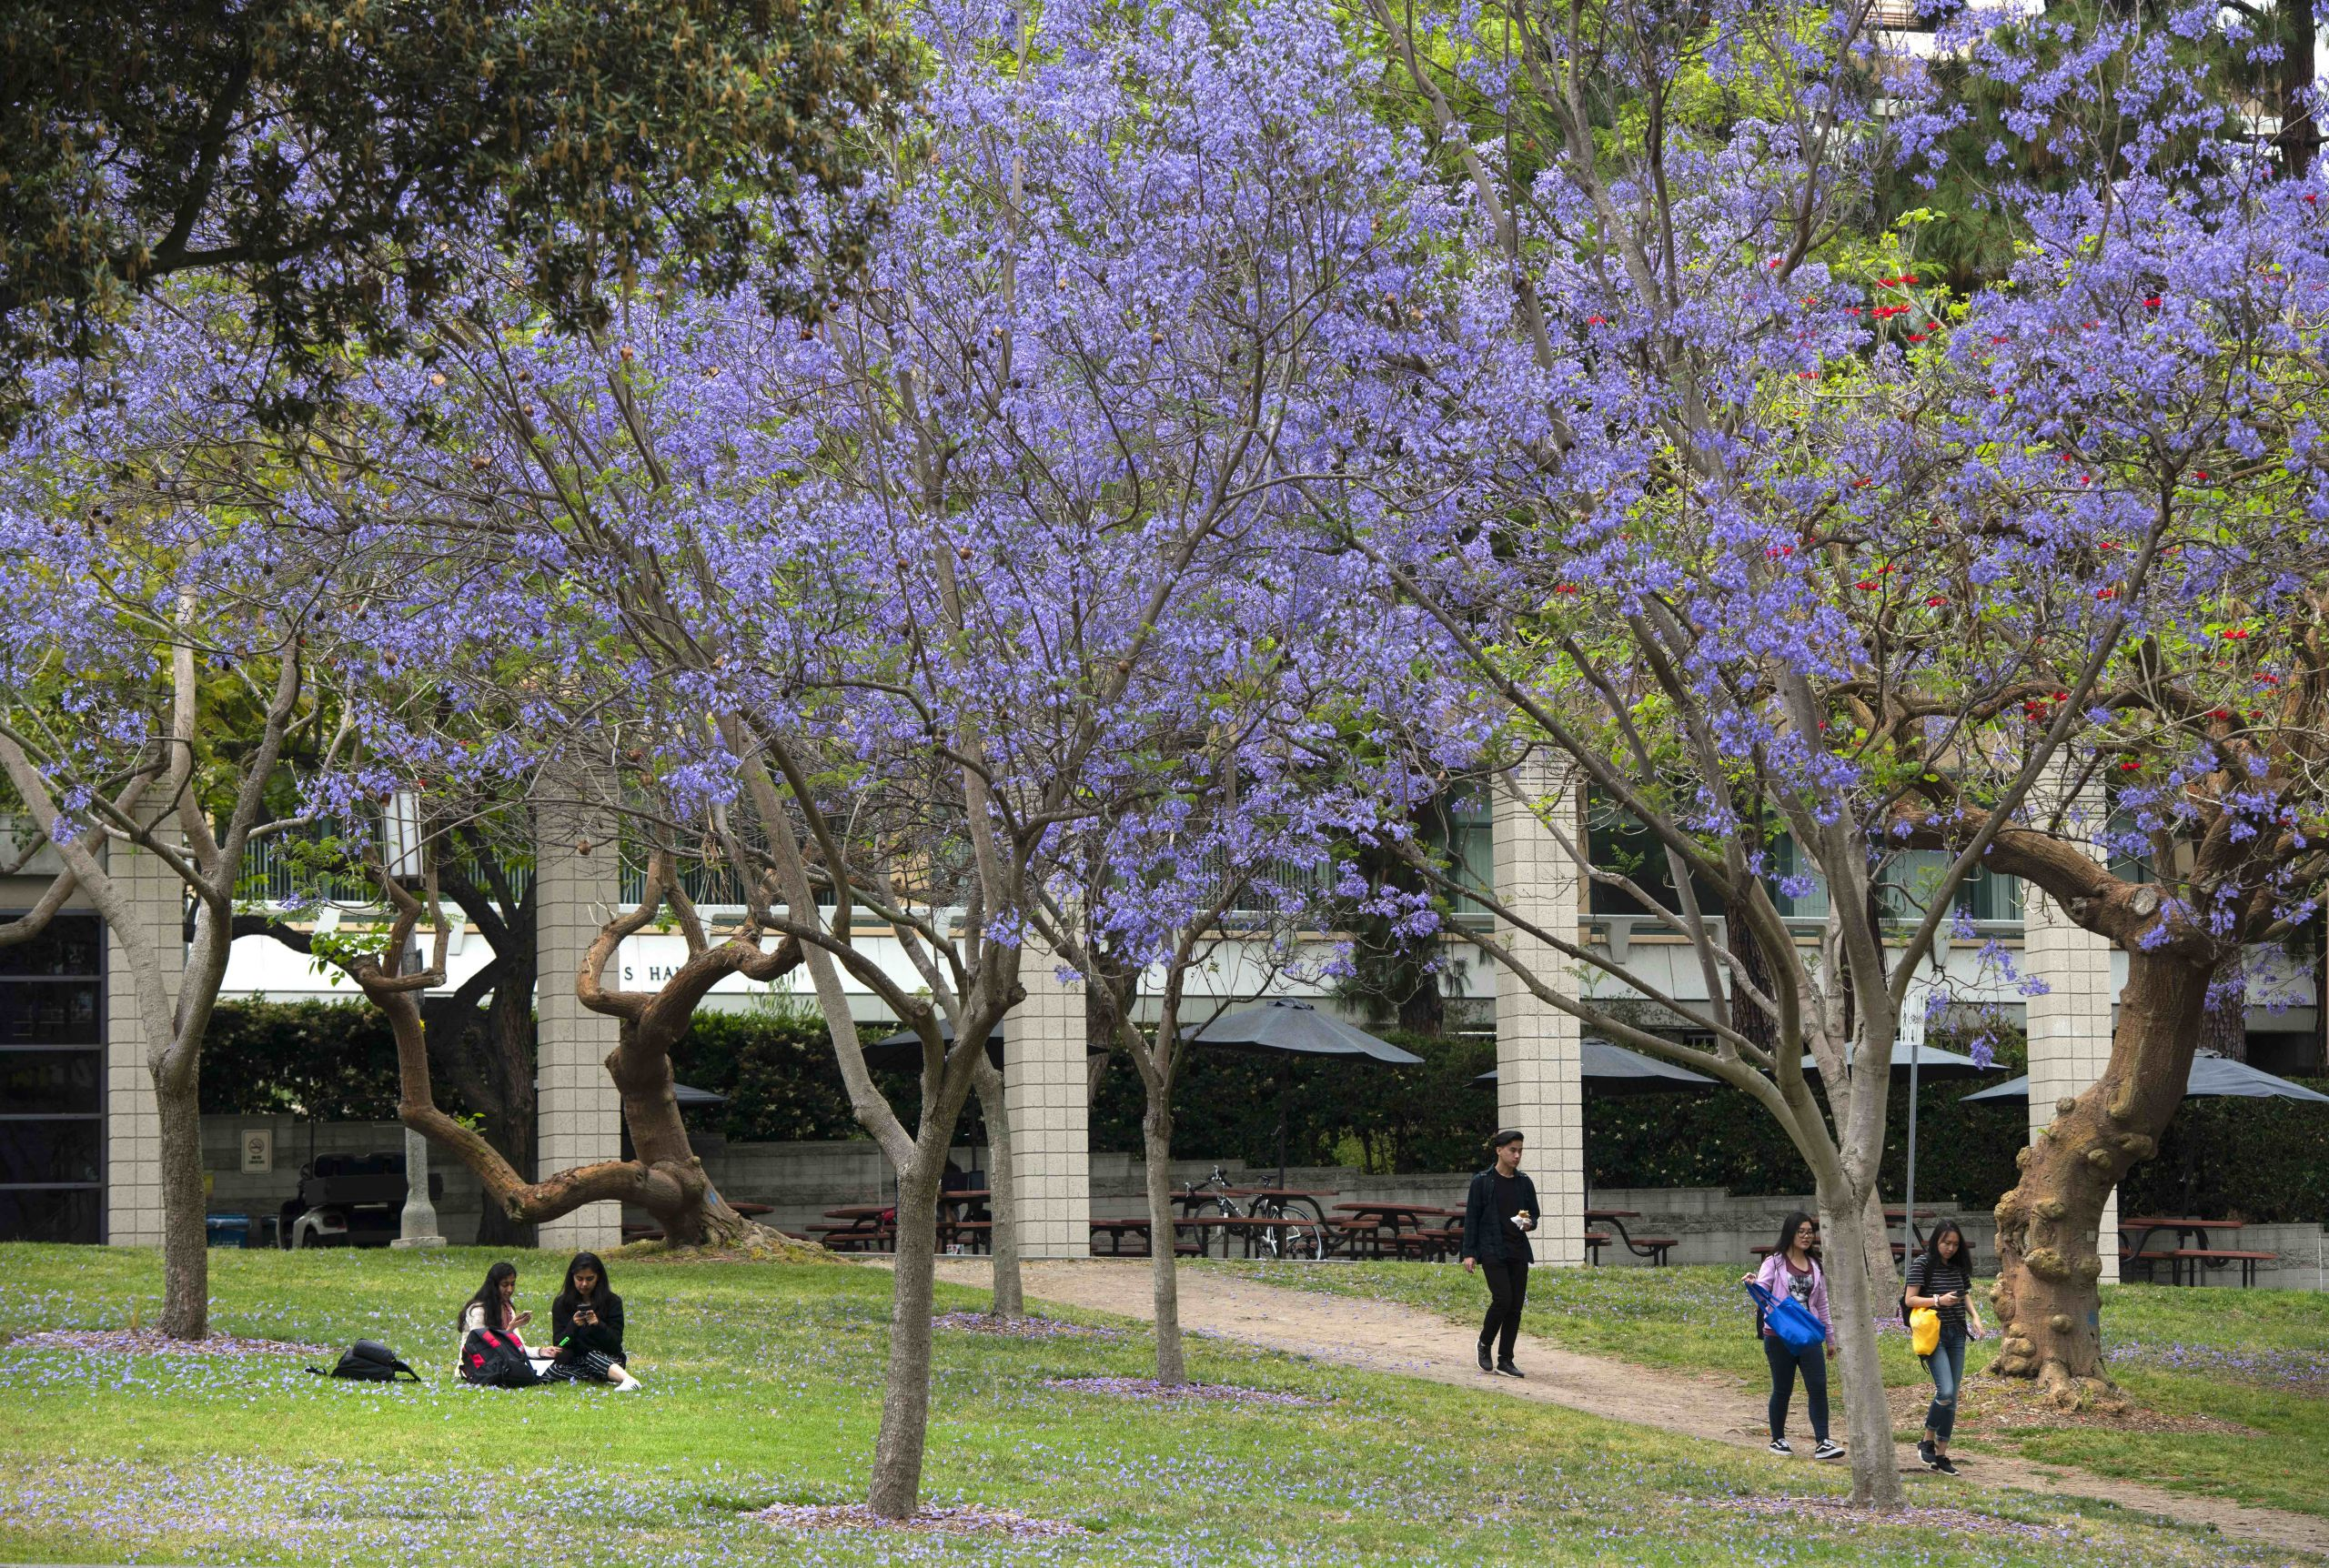 aldrich park with students walking and sitting under jacaranda trees